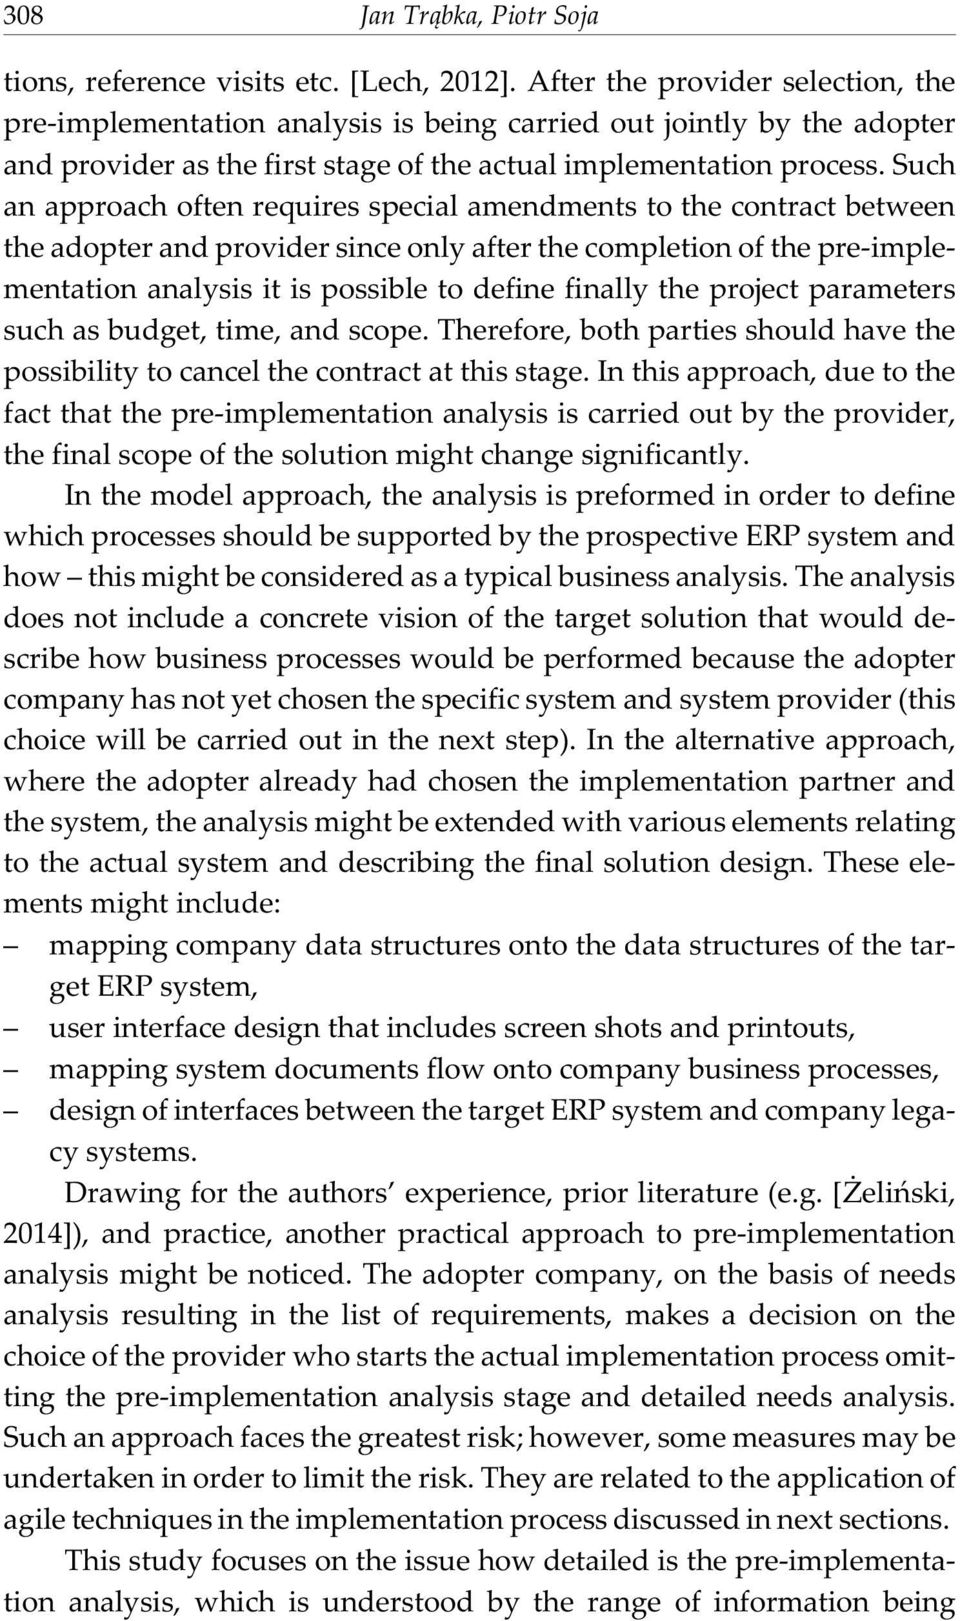 Such an approach often requires special amendments to the contract between the adopter and provider since only after the completion of the pre-implementation analysis it is possible to define finally